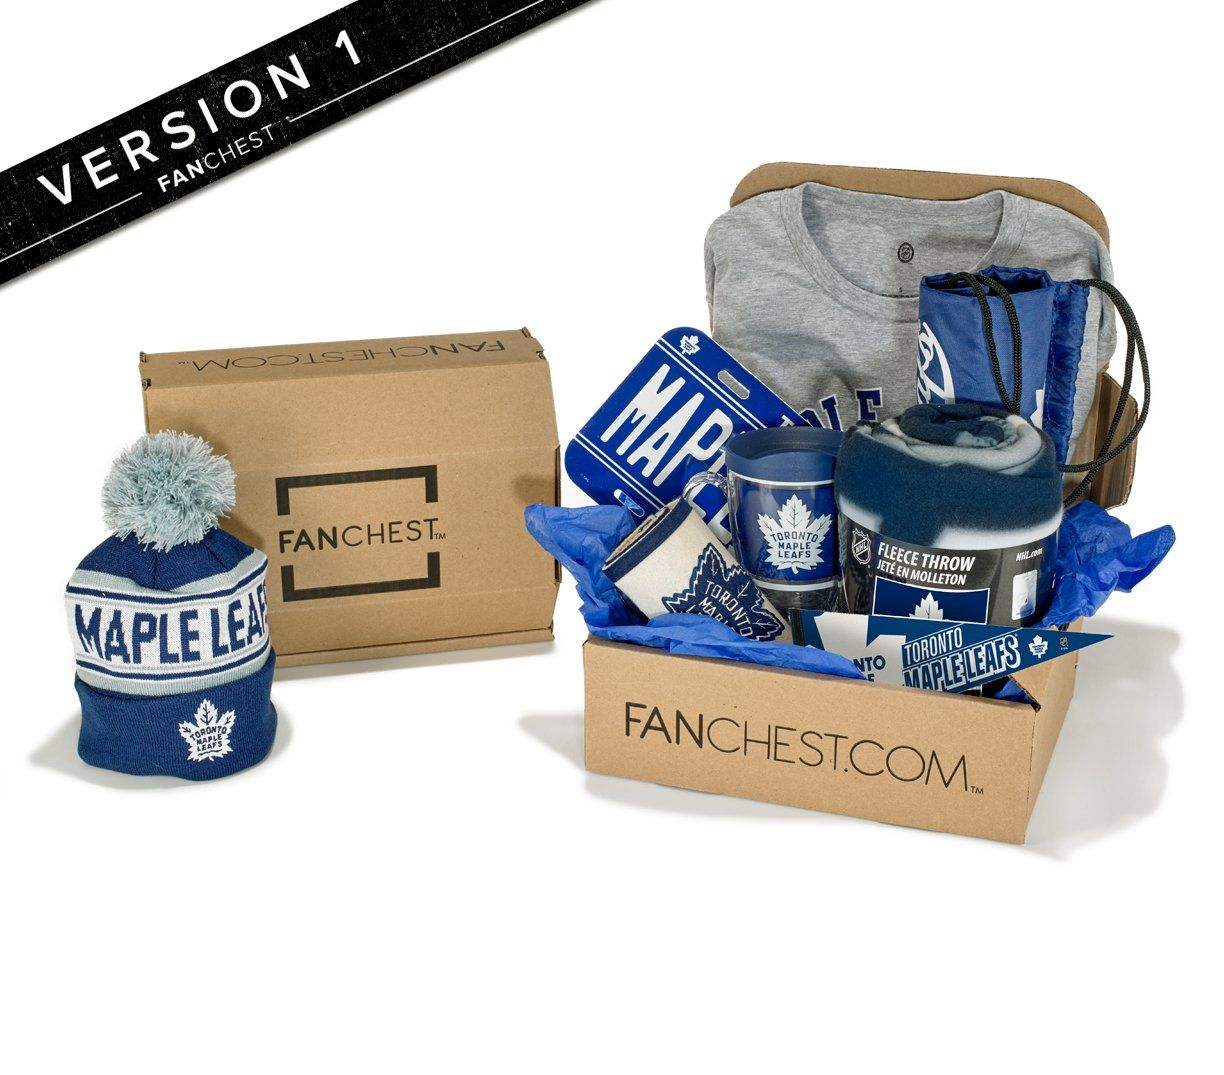 Maple Leafs Hockey Gifts Gifts For Maple Leafs Fans Maple Leafs Fanchest Toronto Maple Leafs